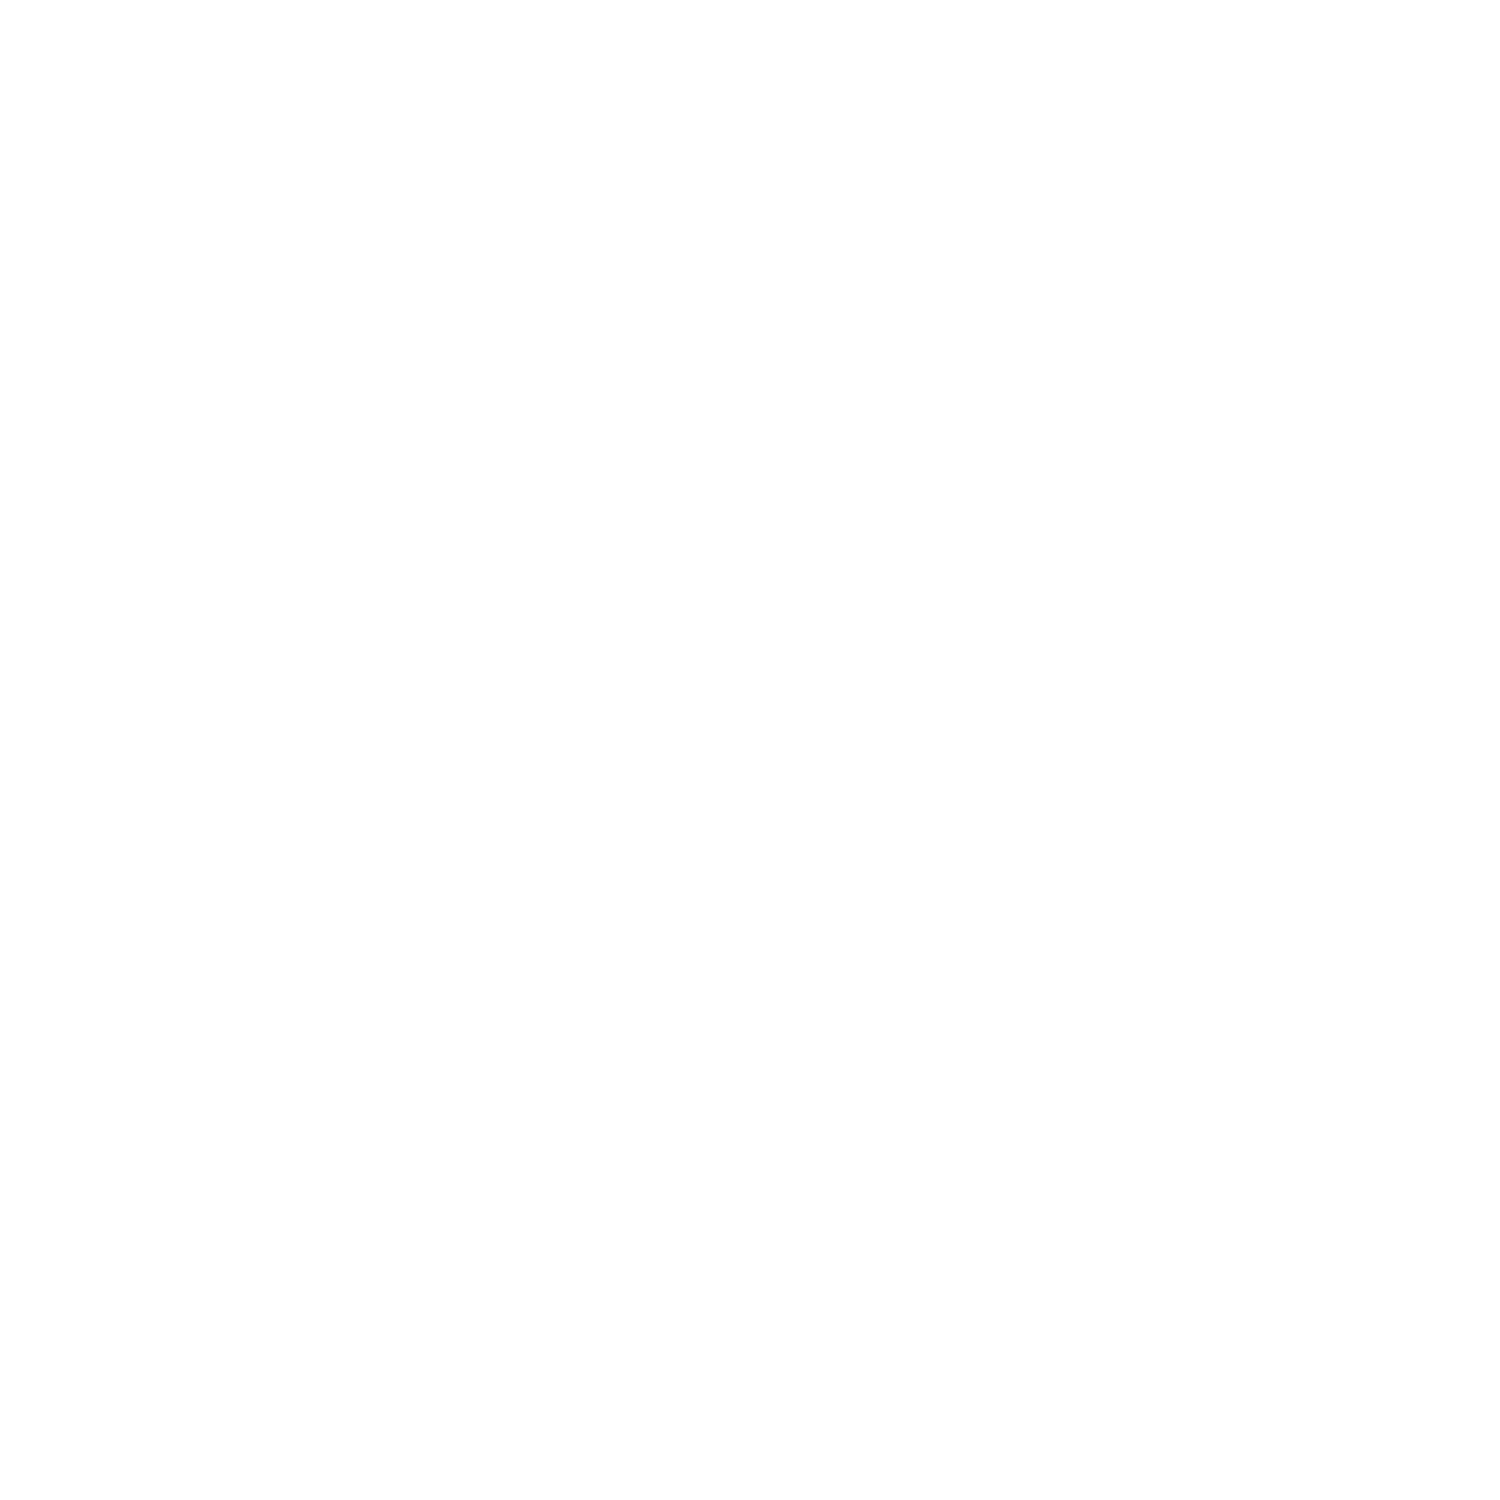 Bold Earth